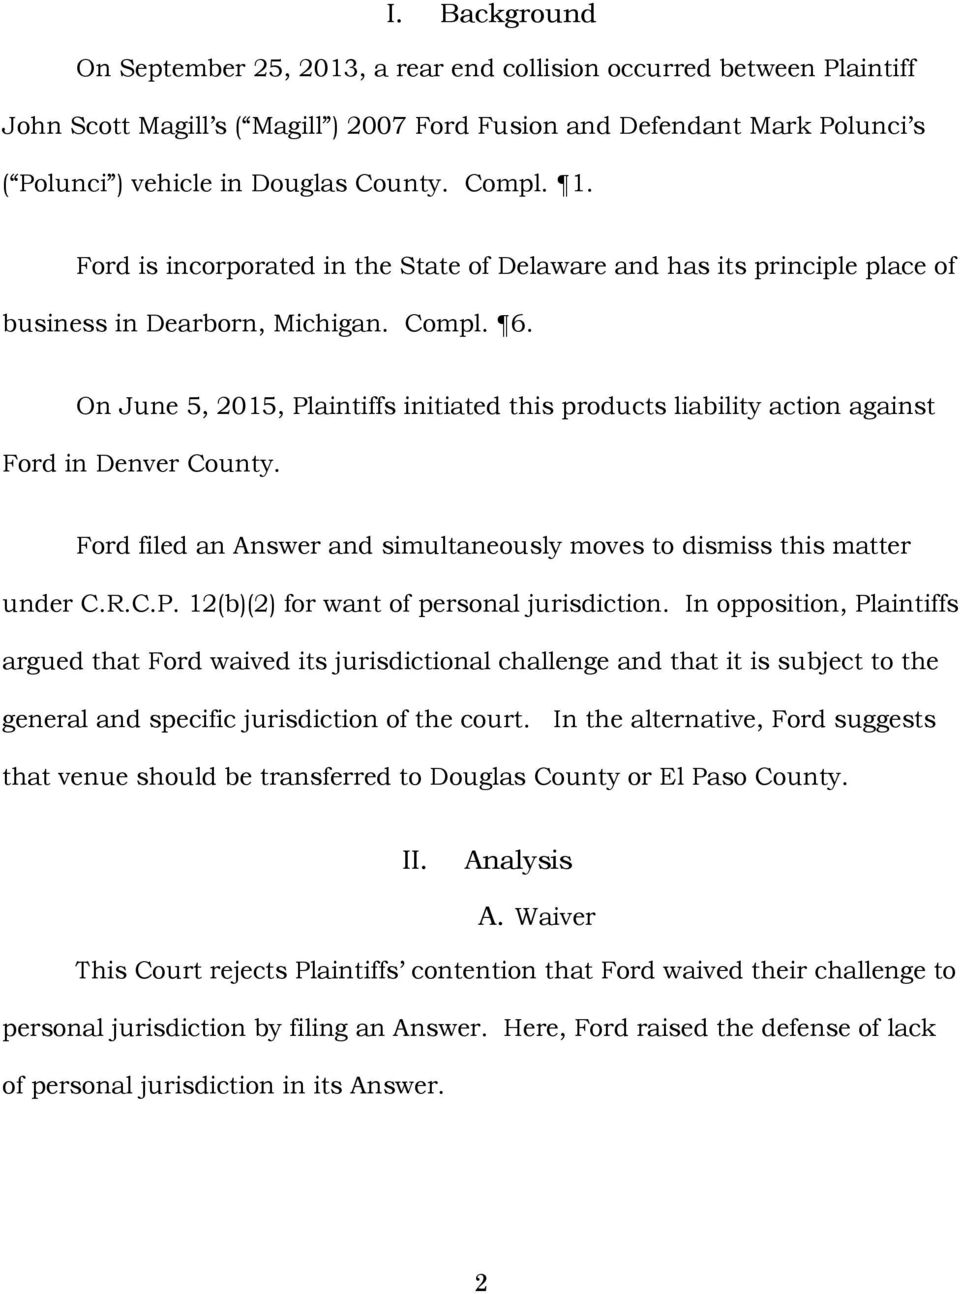 On June 5, 2015, Plaintiffs initiated this products liability action against Ford in Denver County. Ford filed an Answer and simultaneously moves to dismiss this matter under C.R.C.P. 12(b)(2) for want of personal jurisdiction.